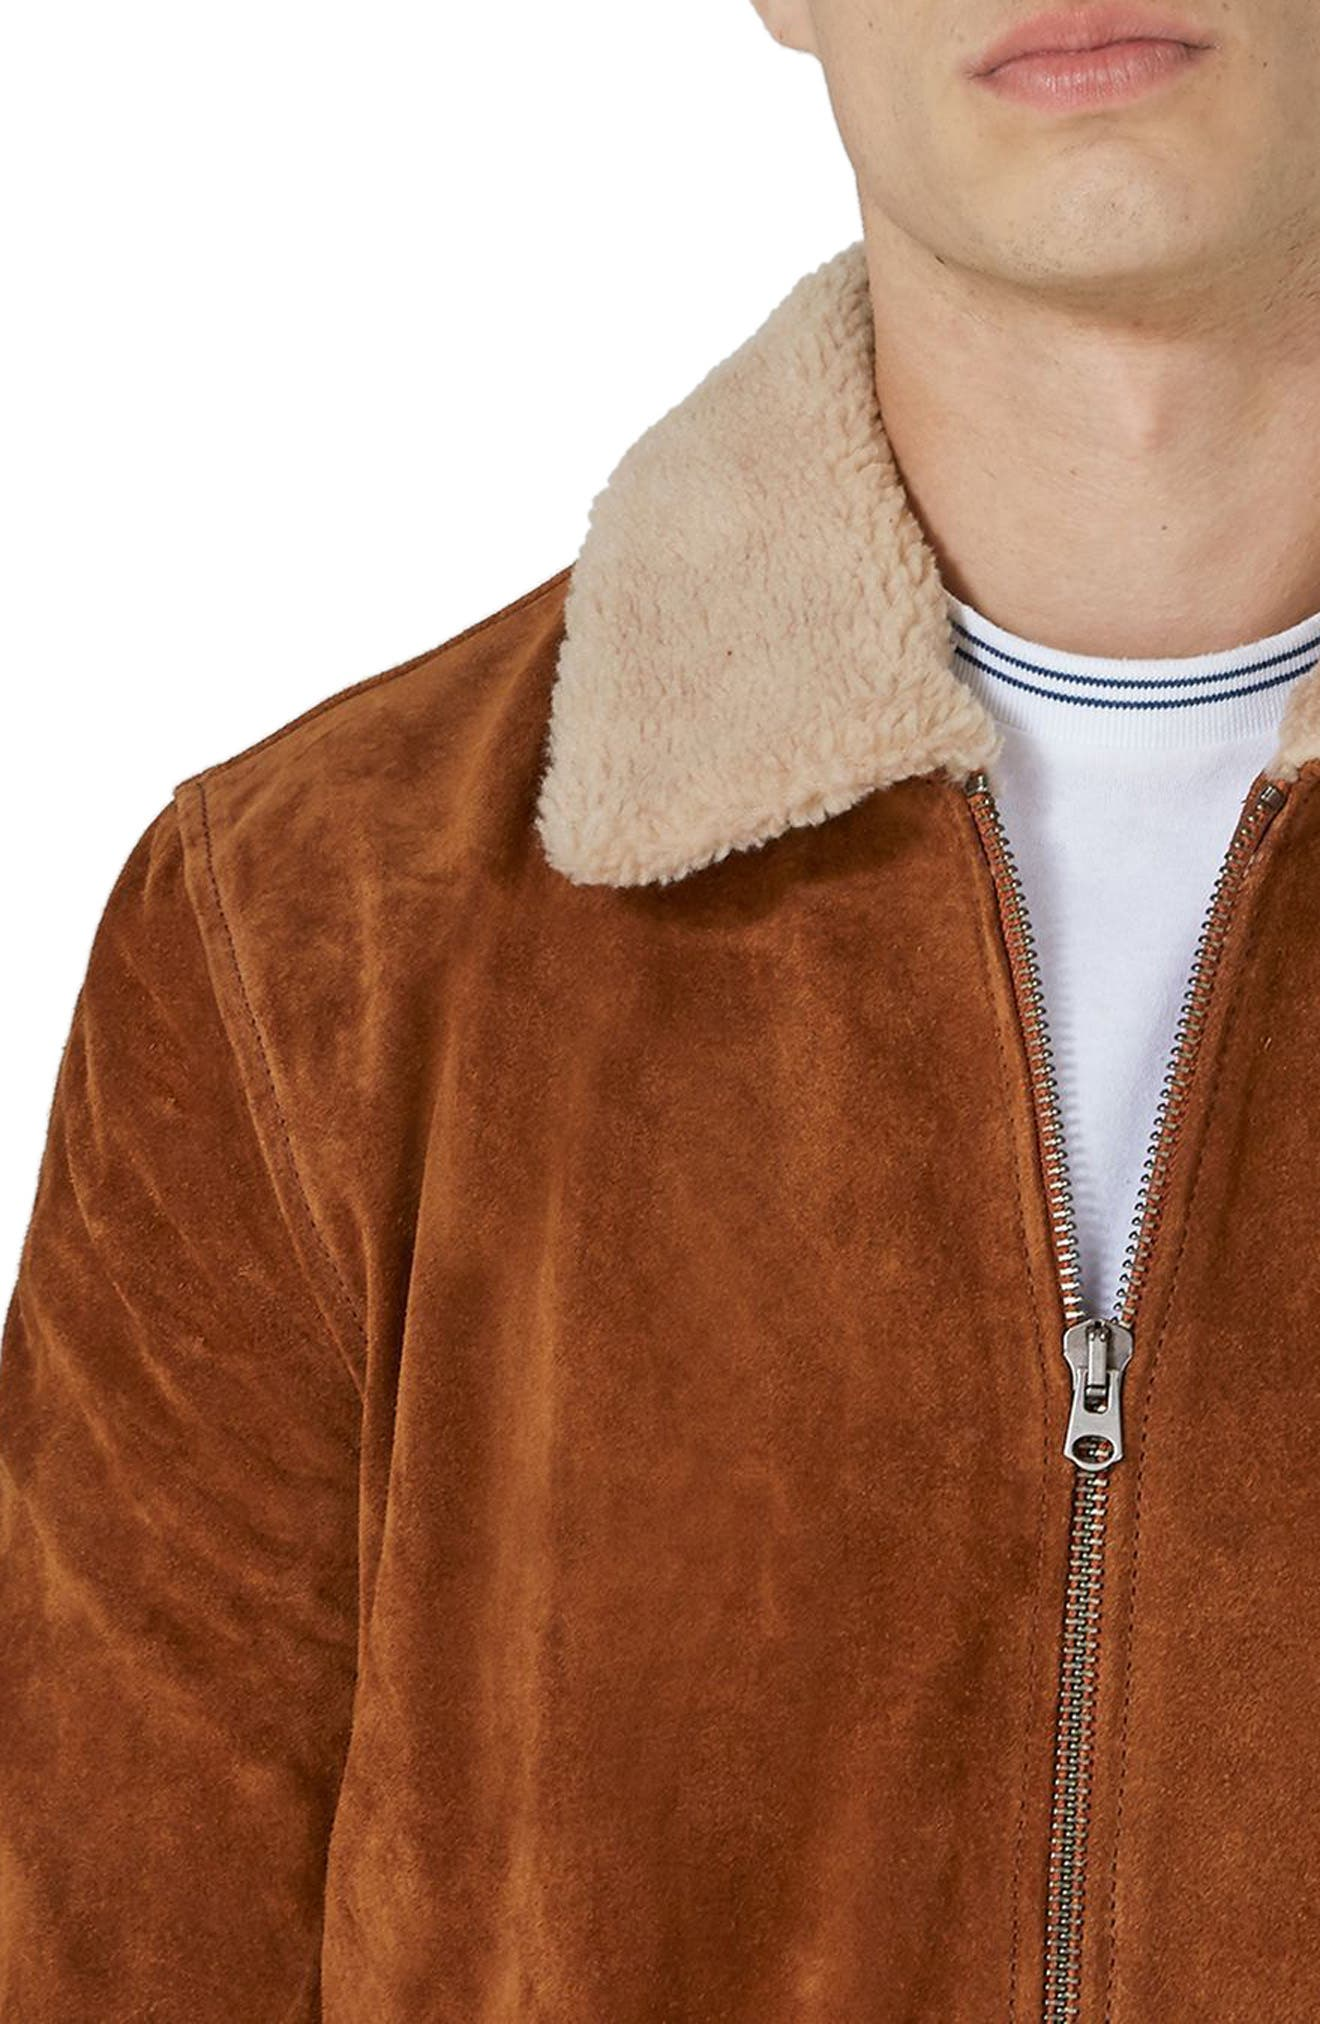 Borg Collar Suede Jacket,                             Alternate thumbnail 3, color,                             200